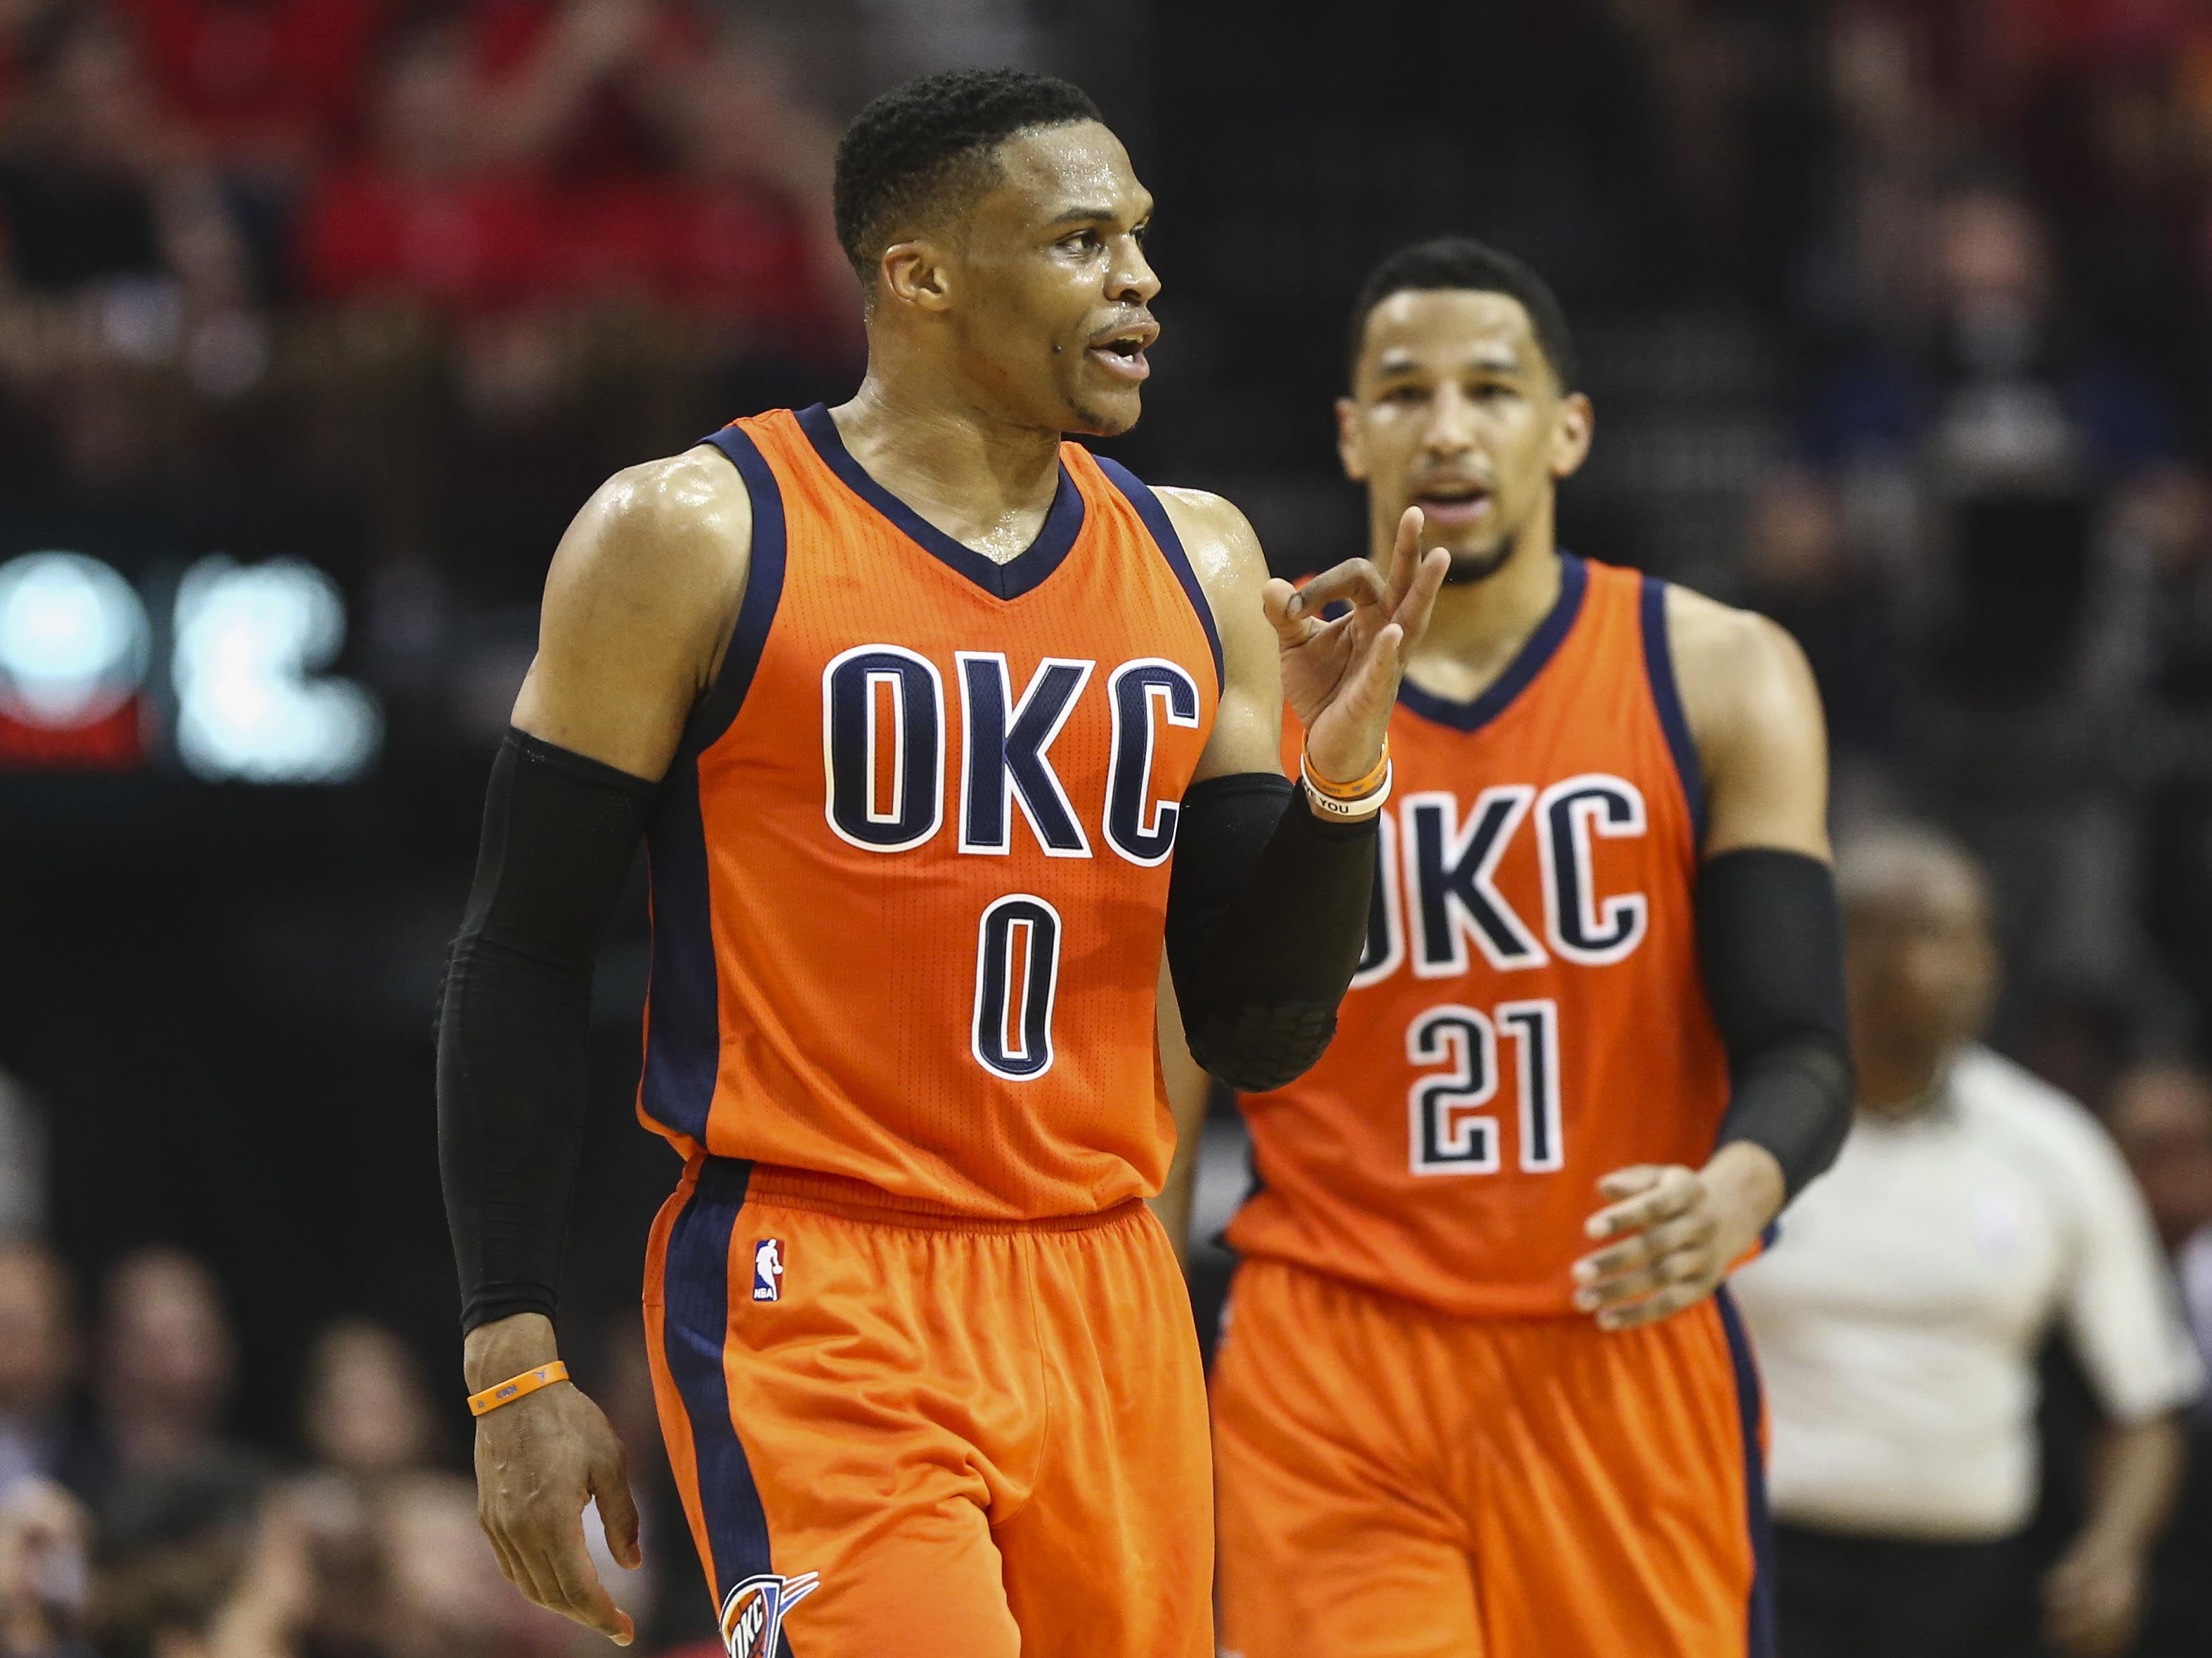 Apr 16, 2017; Houston, TX, USA; Oklahoma City Thunder guard Russell Westbrook (0) reacts after a play during the third quarter against the Houston Rockets in game one of the first round of the 2017 NBA Playoffs at Toyota Center. Mandatory Credit: Troy Taormina-USA TODAY Sports